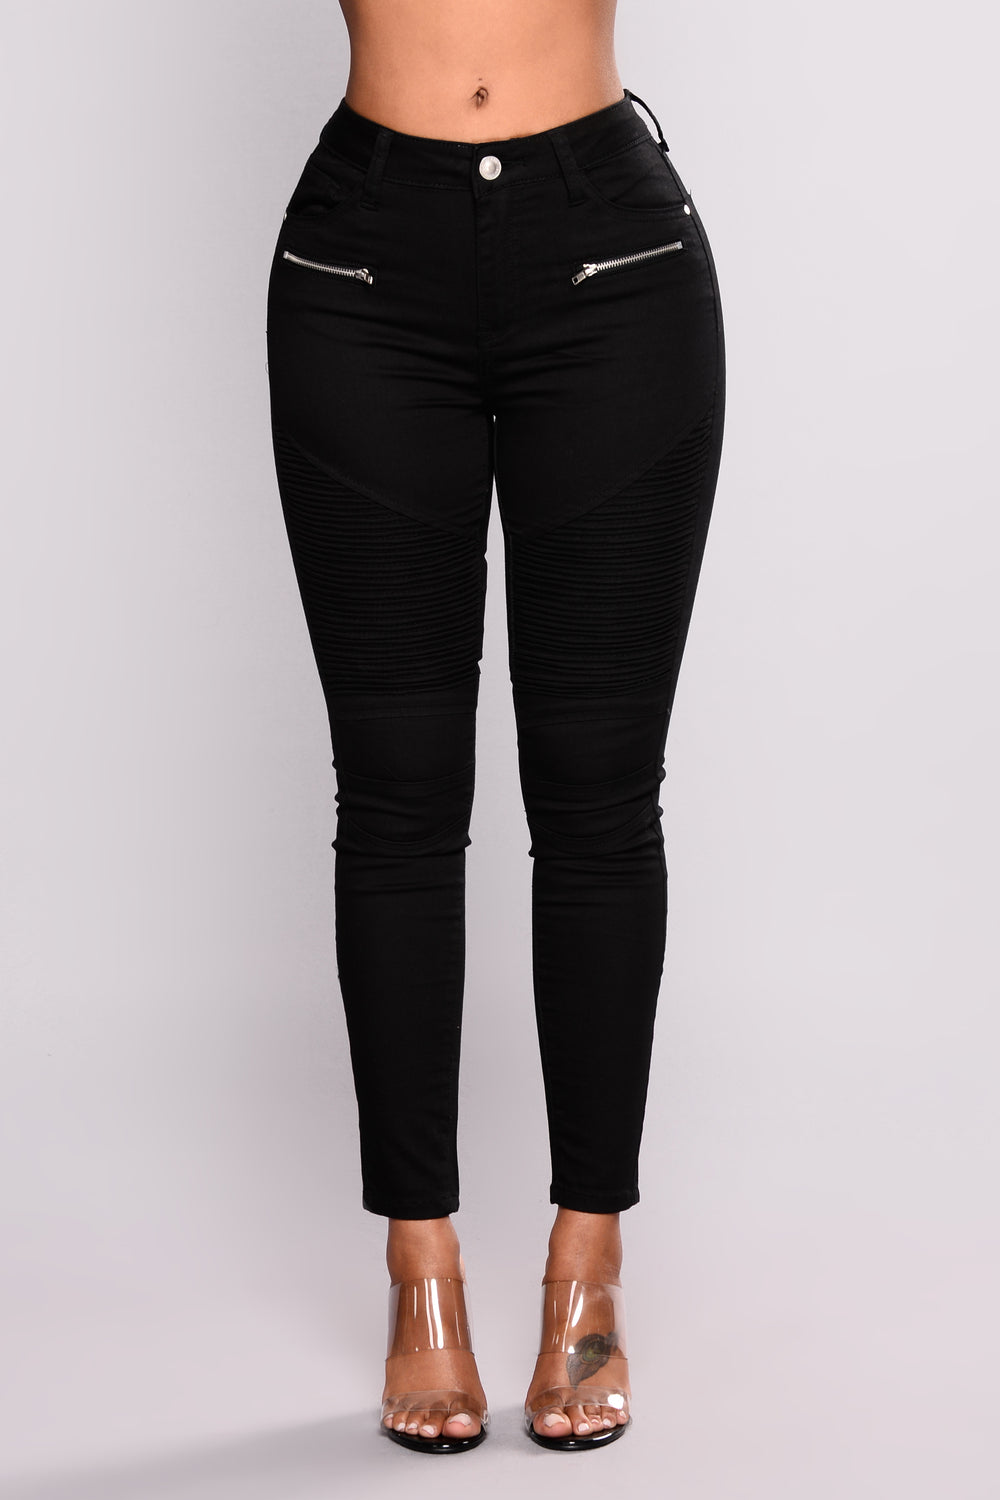 All My Life Ankle Jeans - Black